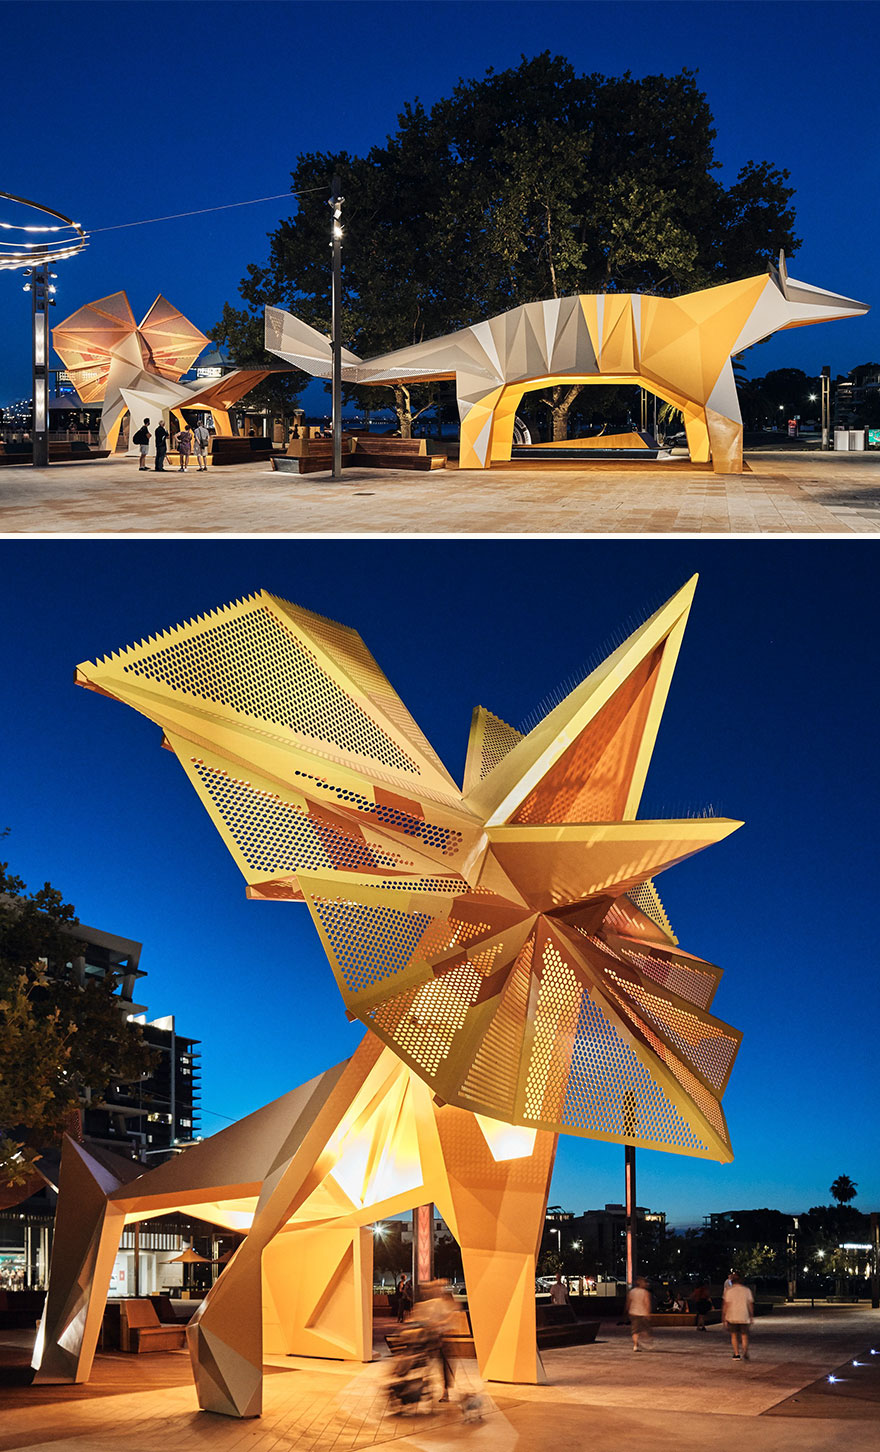 South Perth Mend Street Animal Canopies (Best In Installations & Structures, Landscape Design)